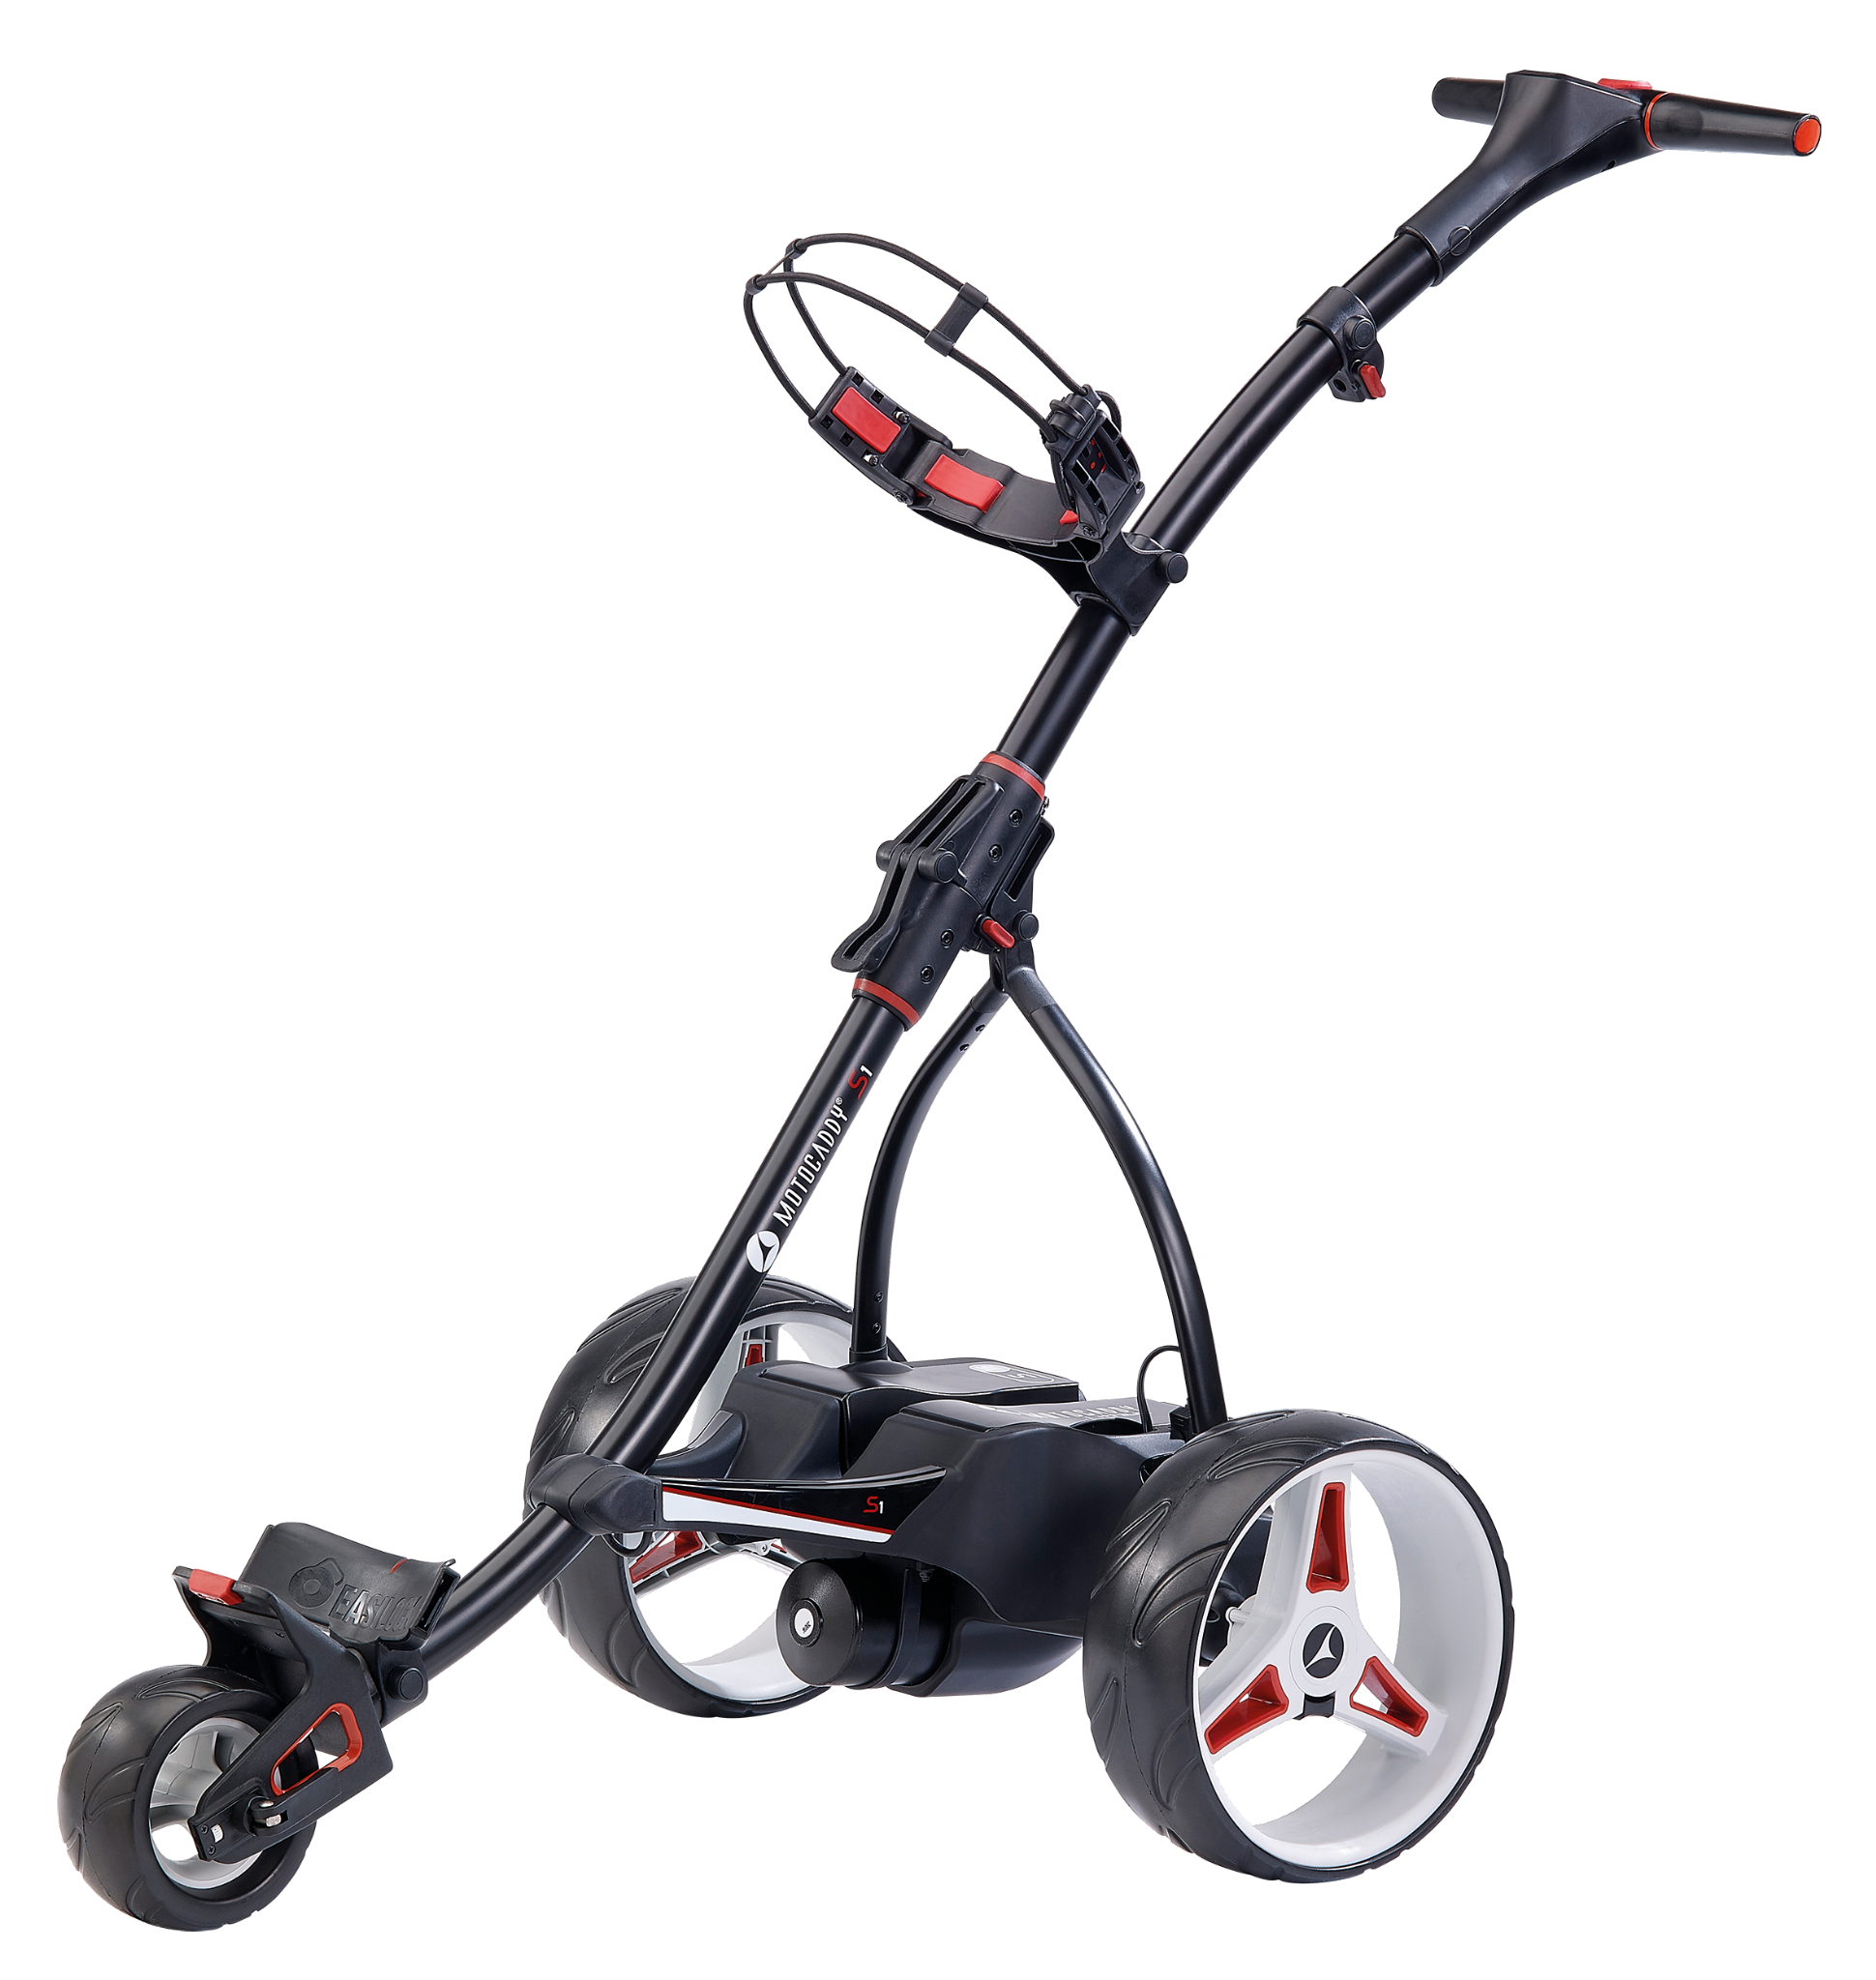 Motocaddy S1 Electric